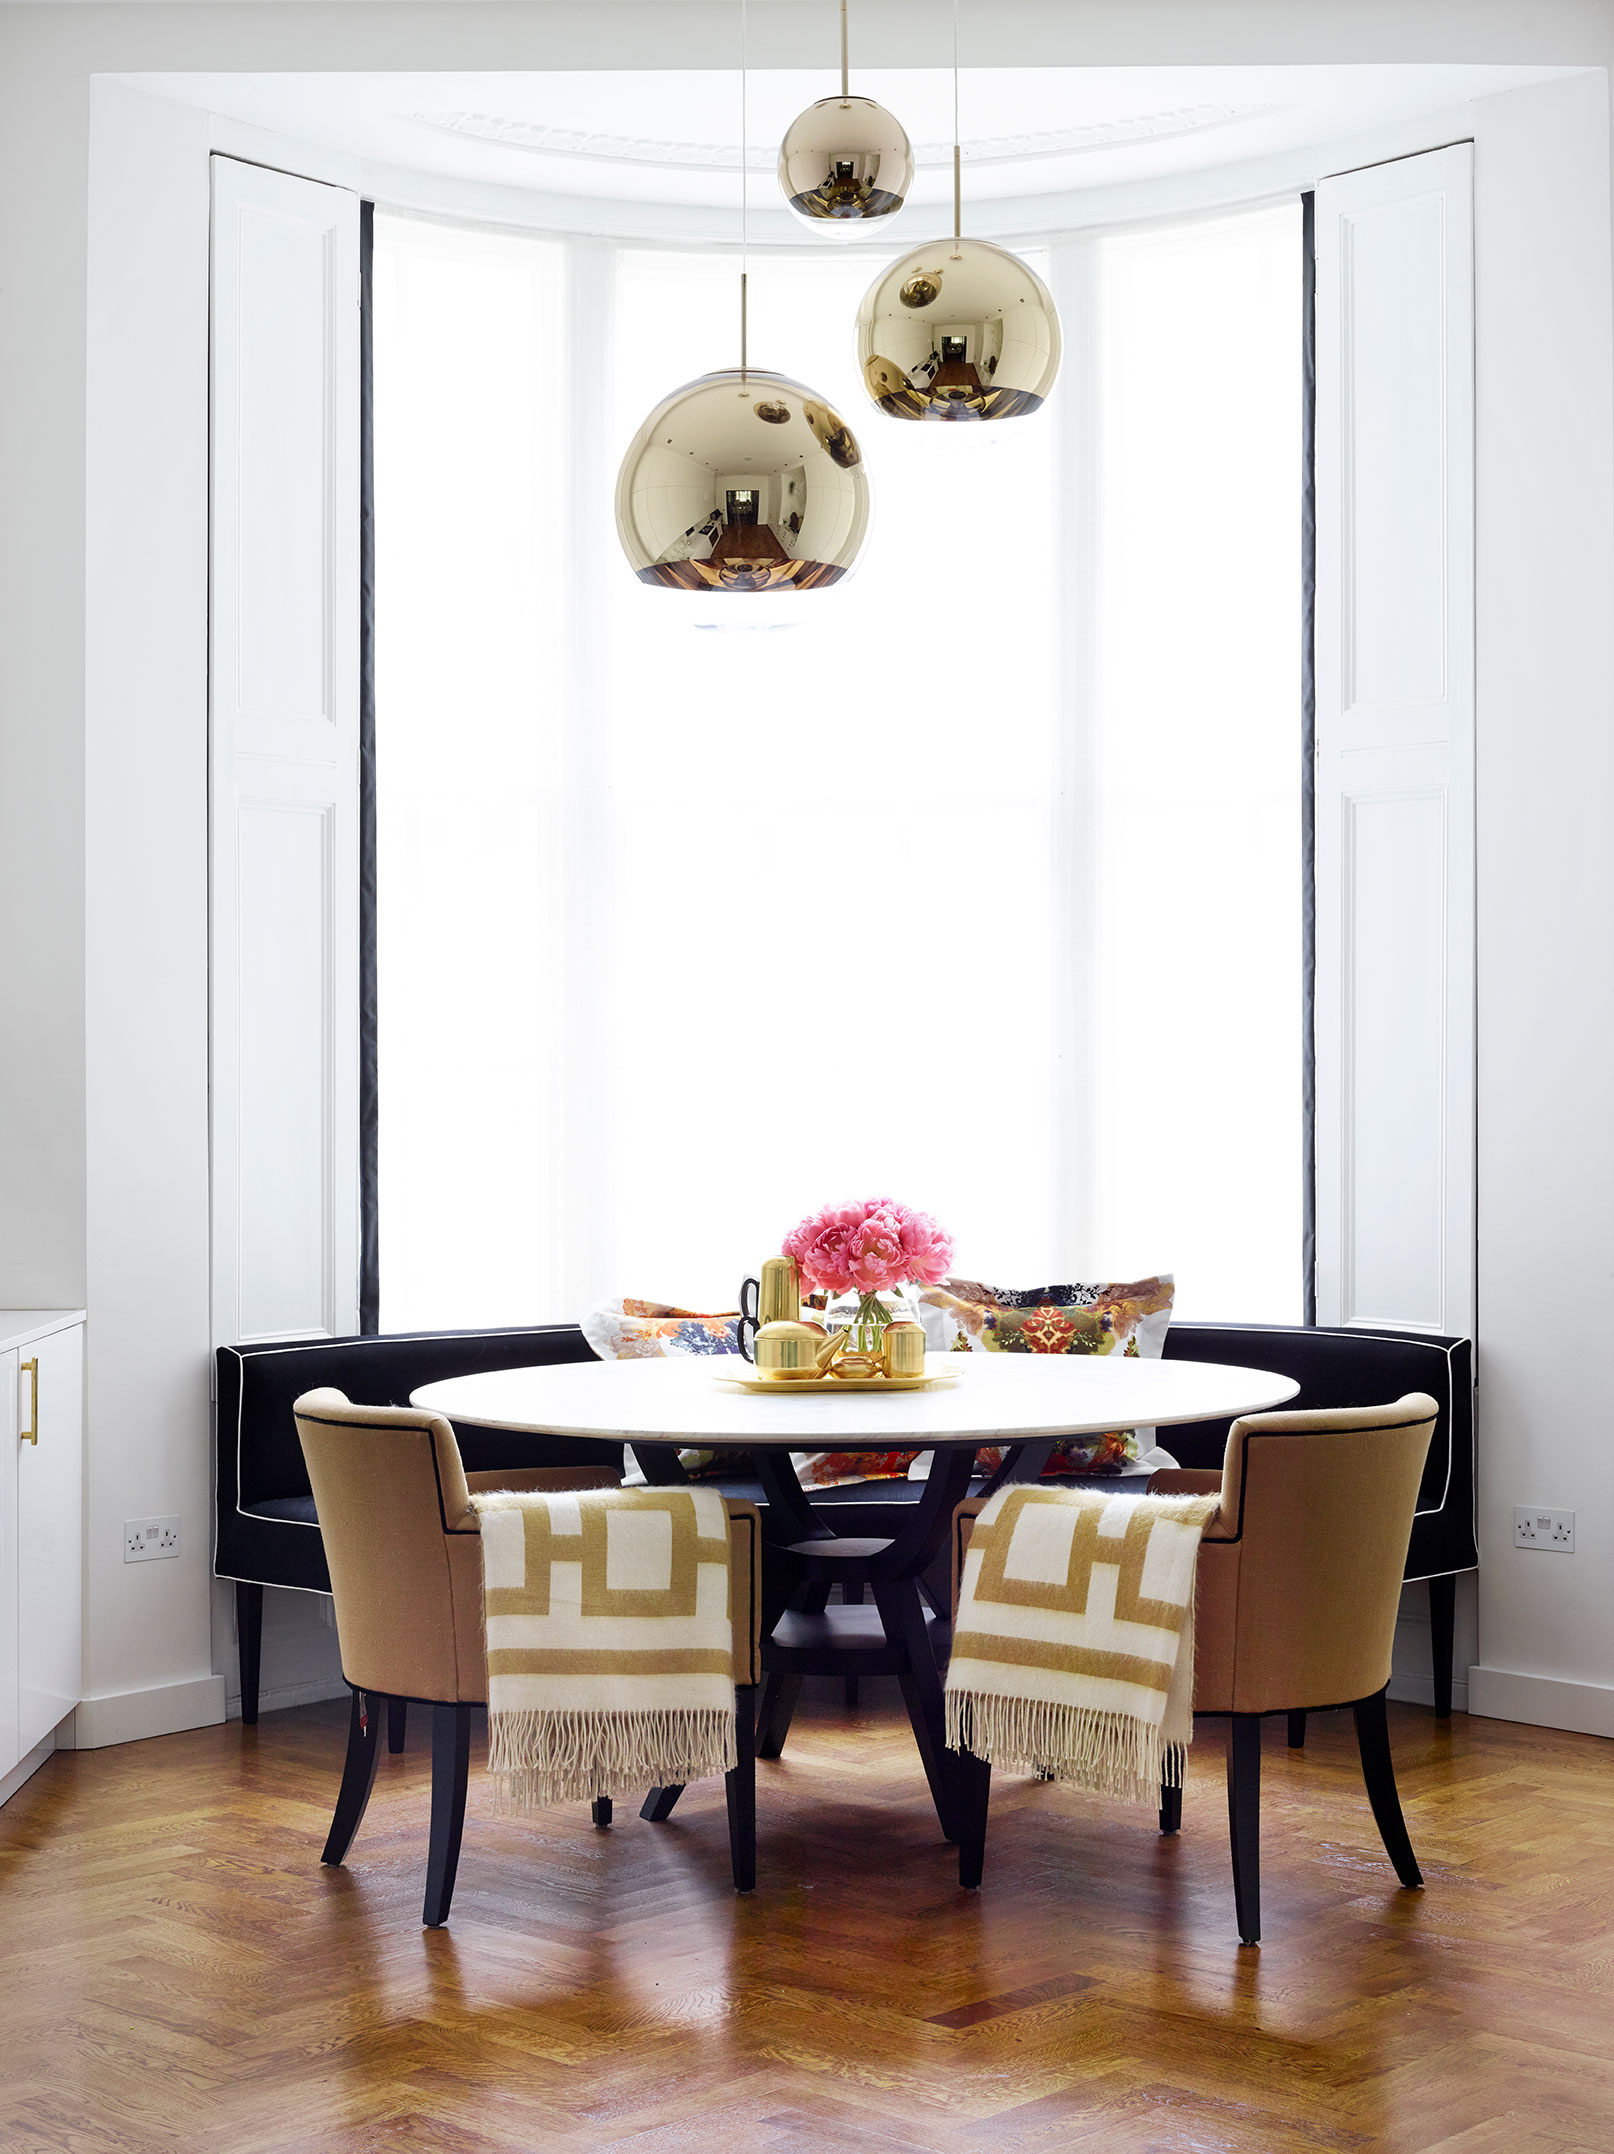 The curved black banquette piped in cream was custom made to Lynn's specifications by designer Raj Sharma.  Tom Dixon 's Mirror Ball pendant lights add sheen, while  Jonathan Adler 's Nixon alpaca throws introduce a luxurious note.